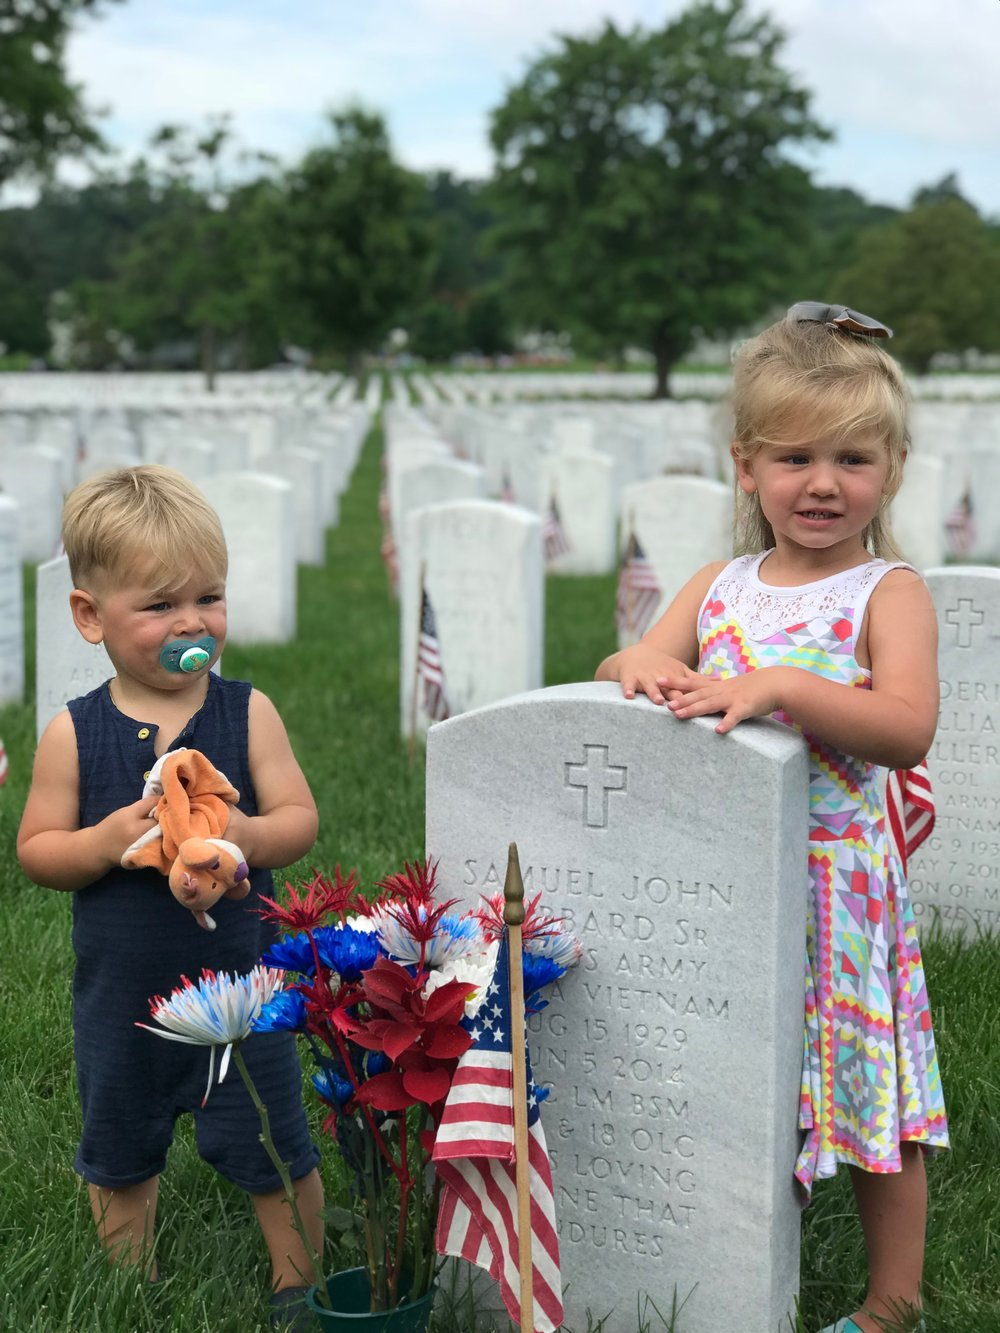 The Kids in Arlington National Cemetary May 2018 - this is their Great Grandfather's Grave